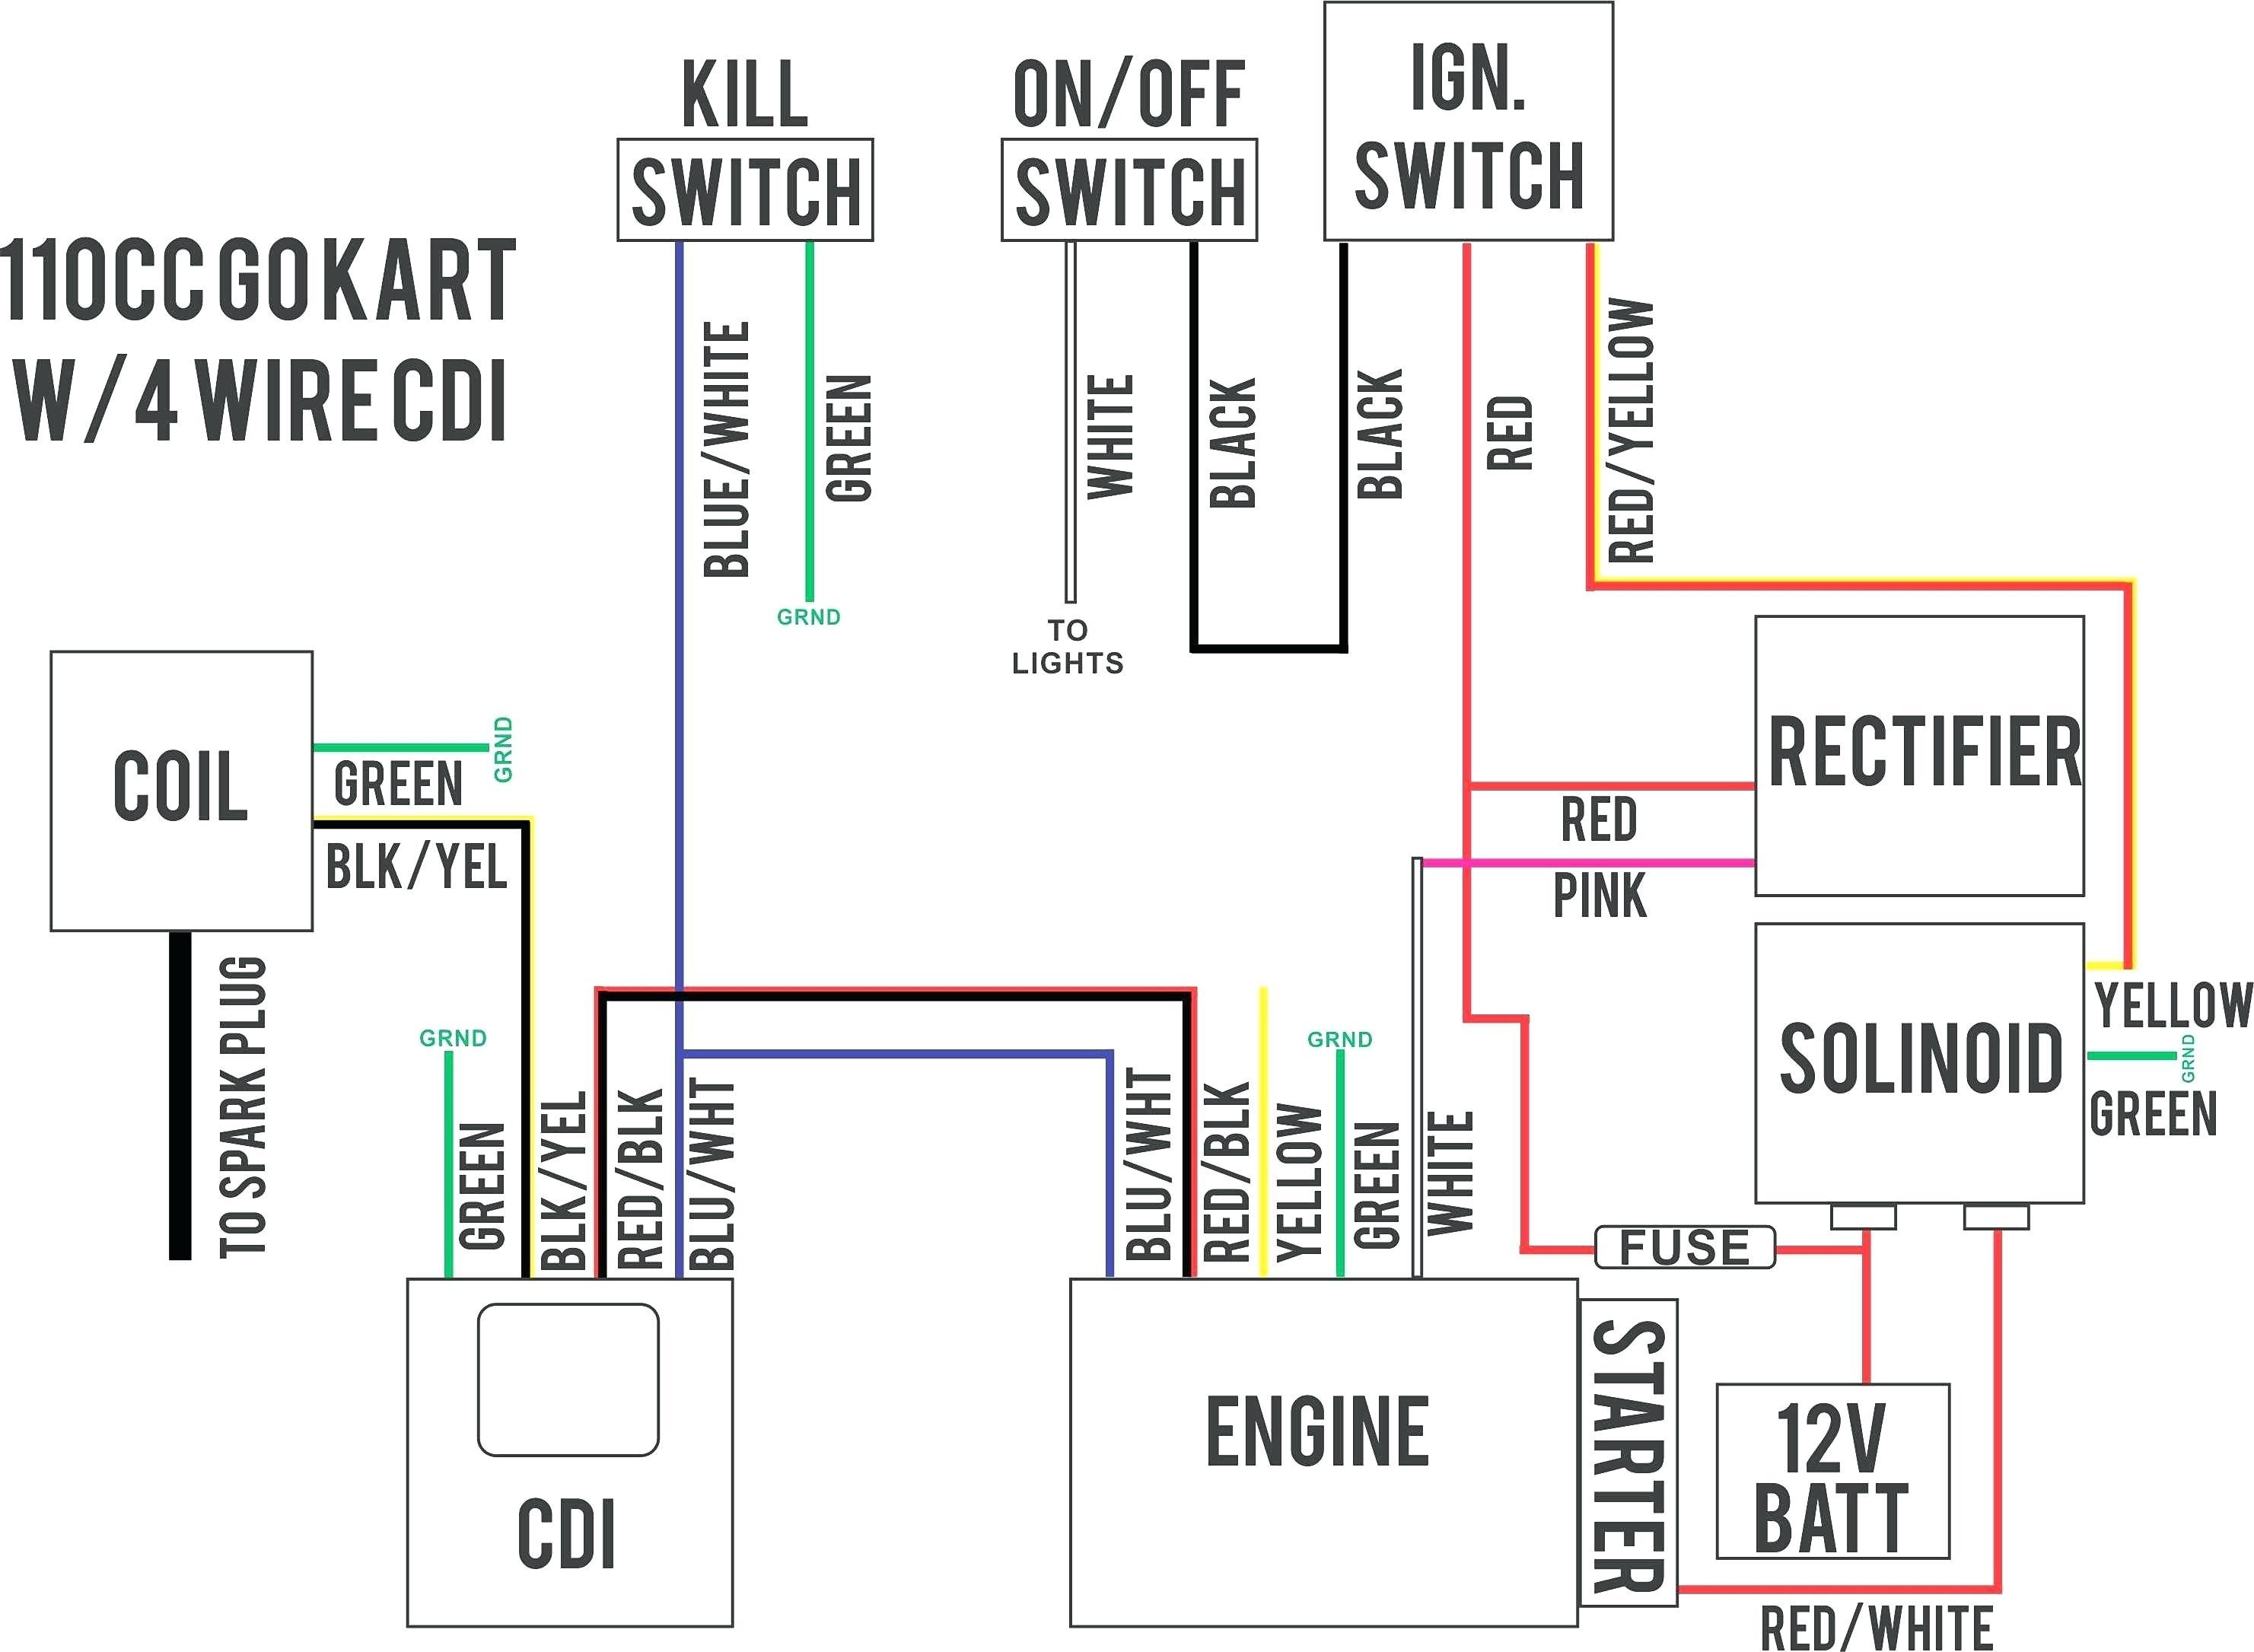 Rv Automatic Transfer Switch Wiring Diagram Simplified Shapes Wiring - Rv Automatic Transfer Switch Wiring Diagram